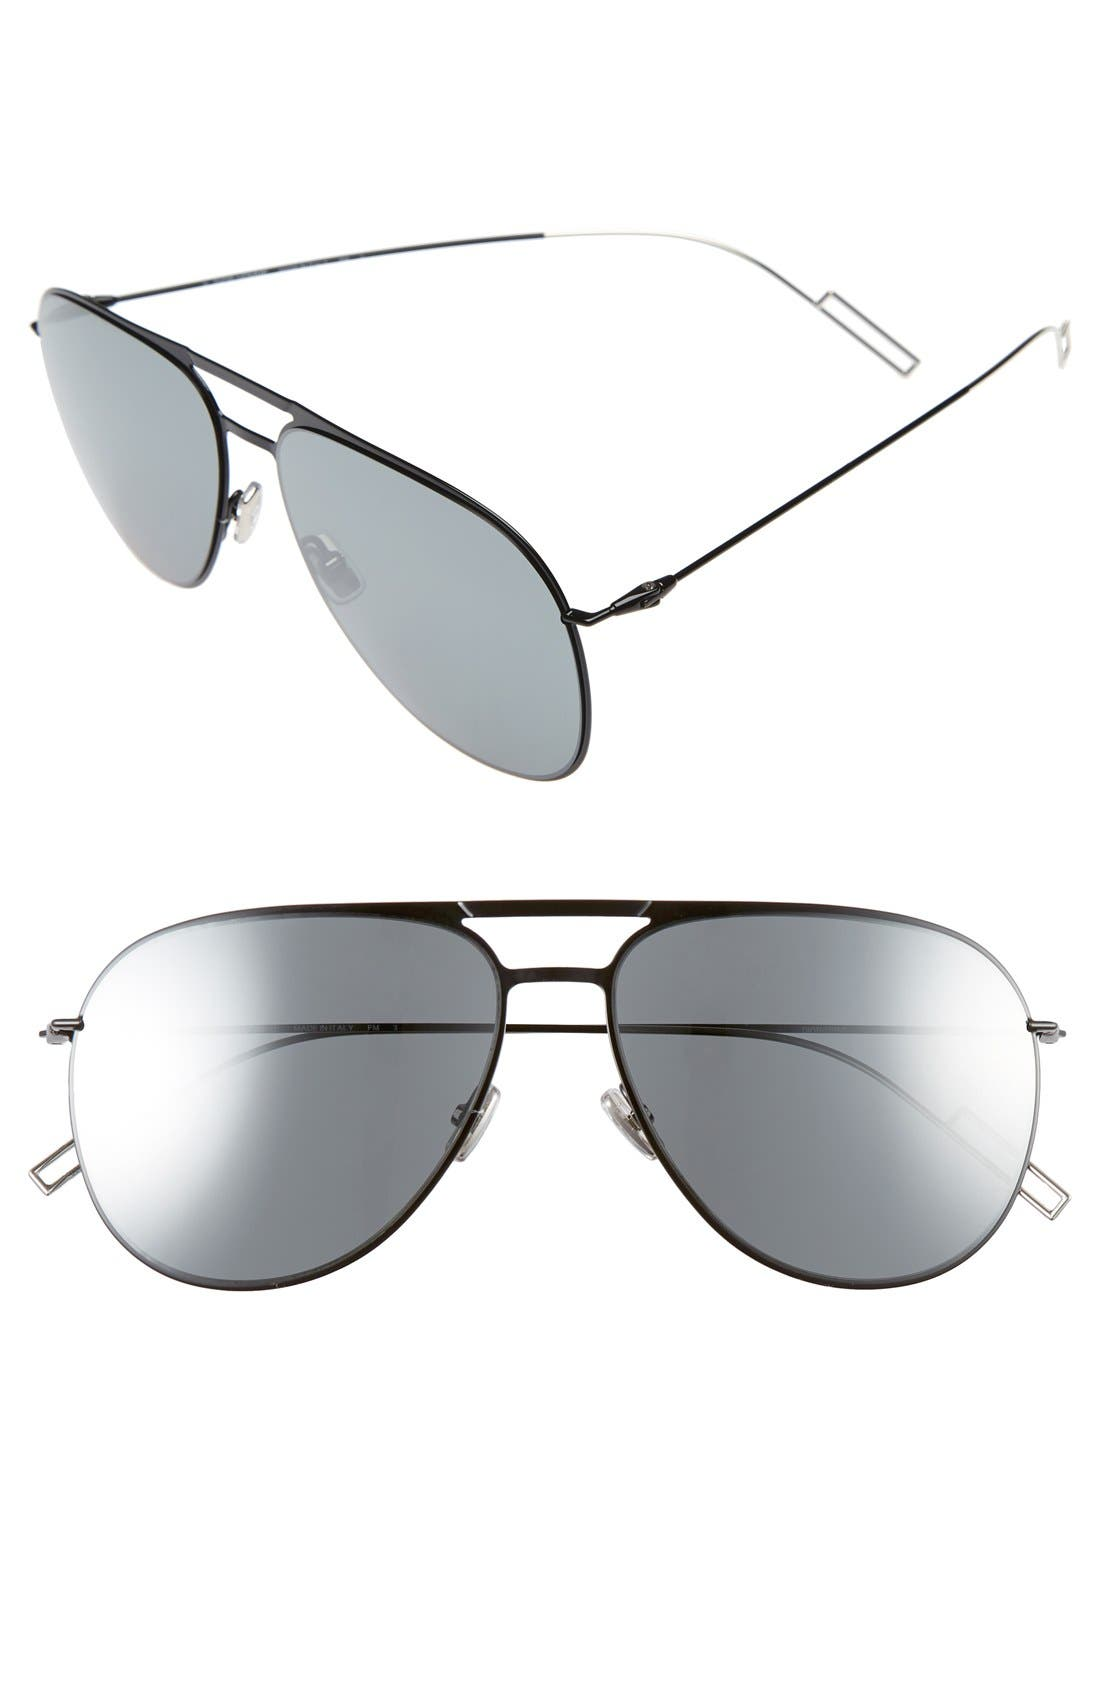 DIOR HOMME 59Mm Aviator Sunglasses in Shiny Black